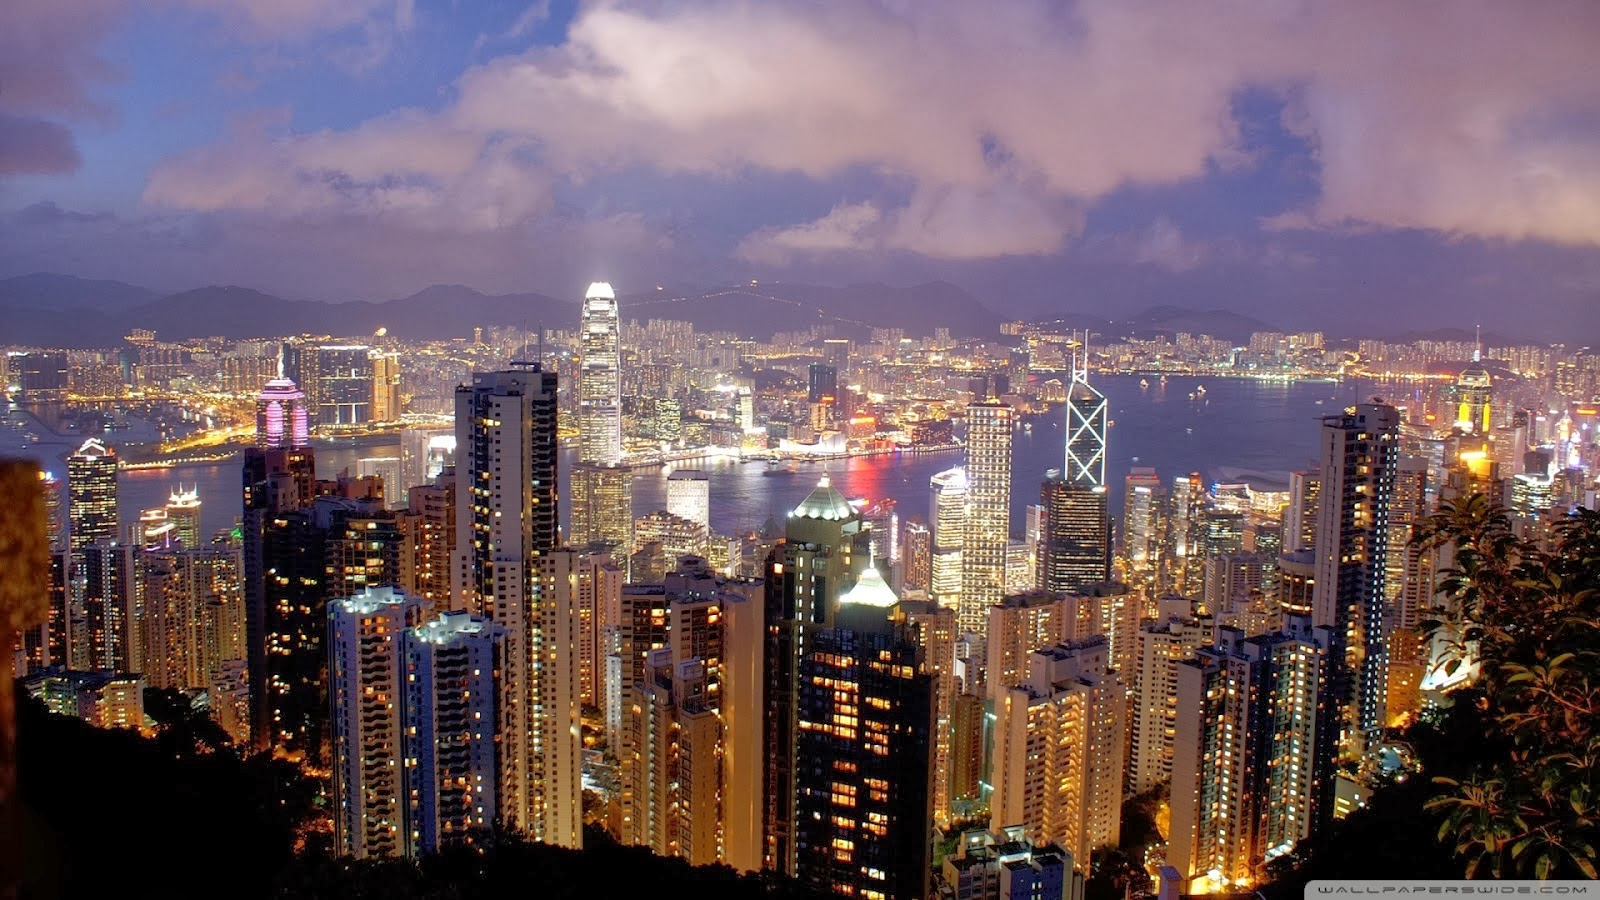 city hd wallpapers 1080p hong kong city hd wallpapers 1080p 1600x900